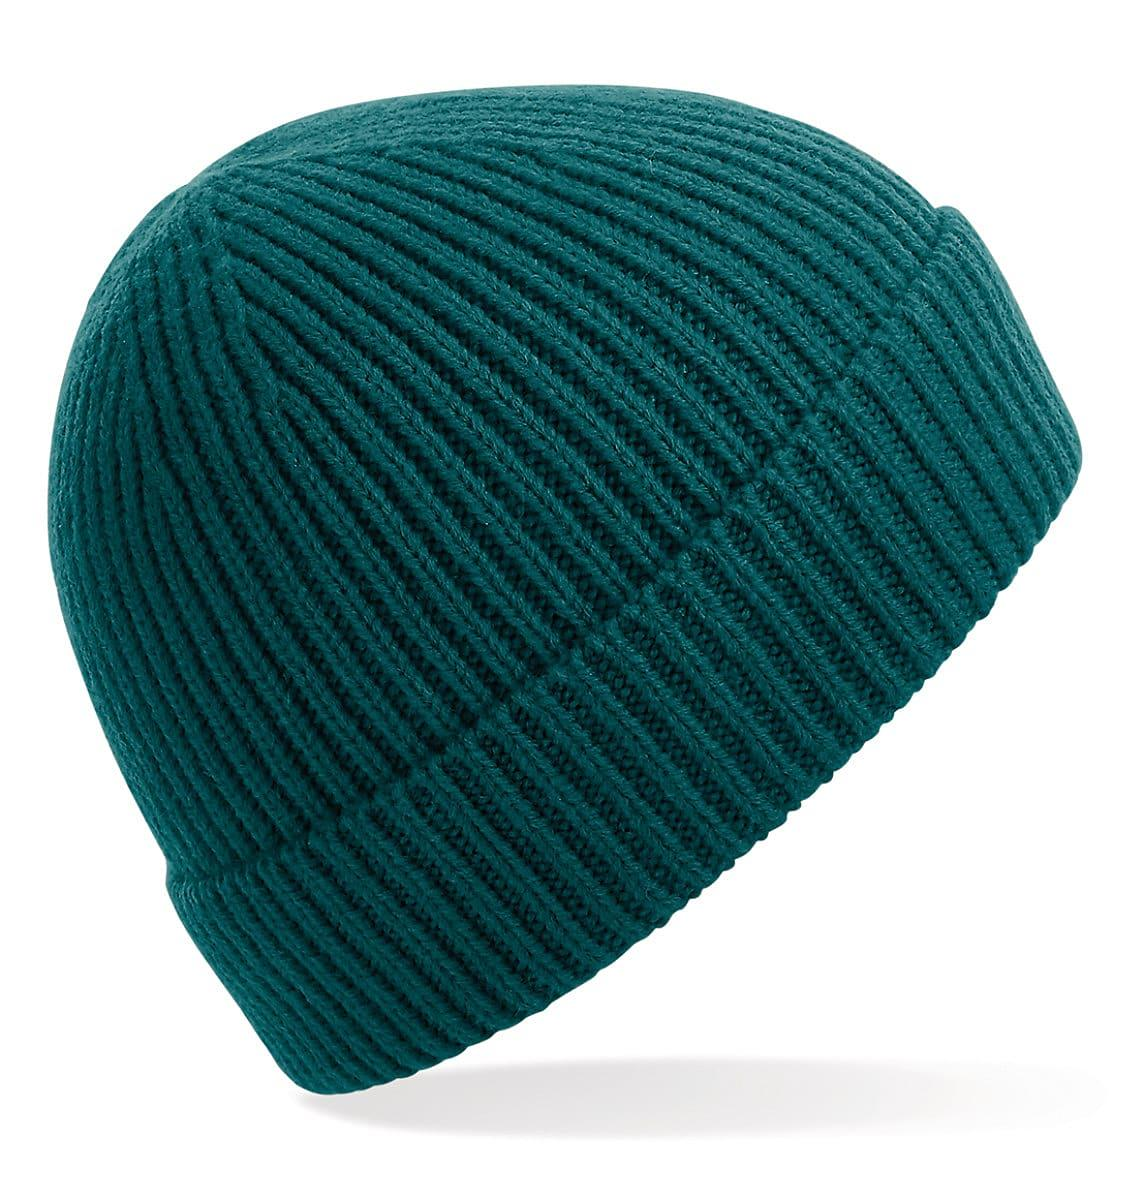 Beechfield Engineered Knit Ribbed Beanie Hat in Ocean Green (Product Code: B380)